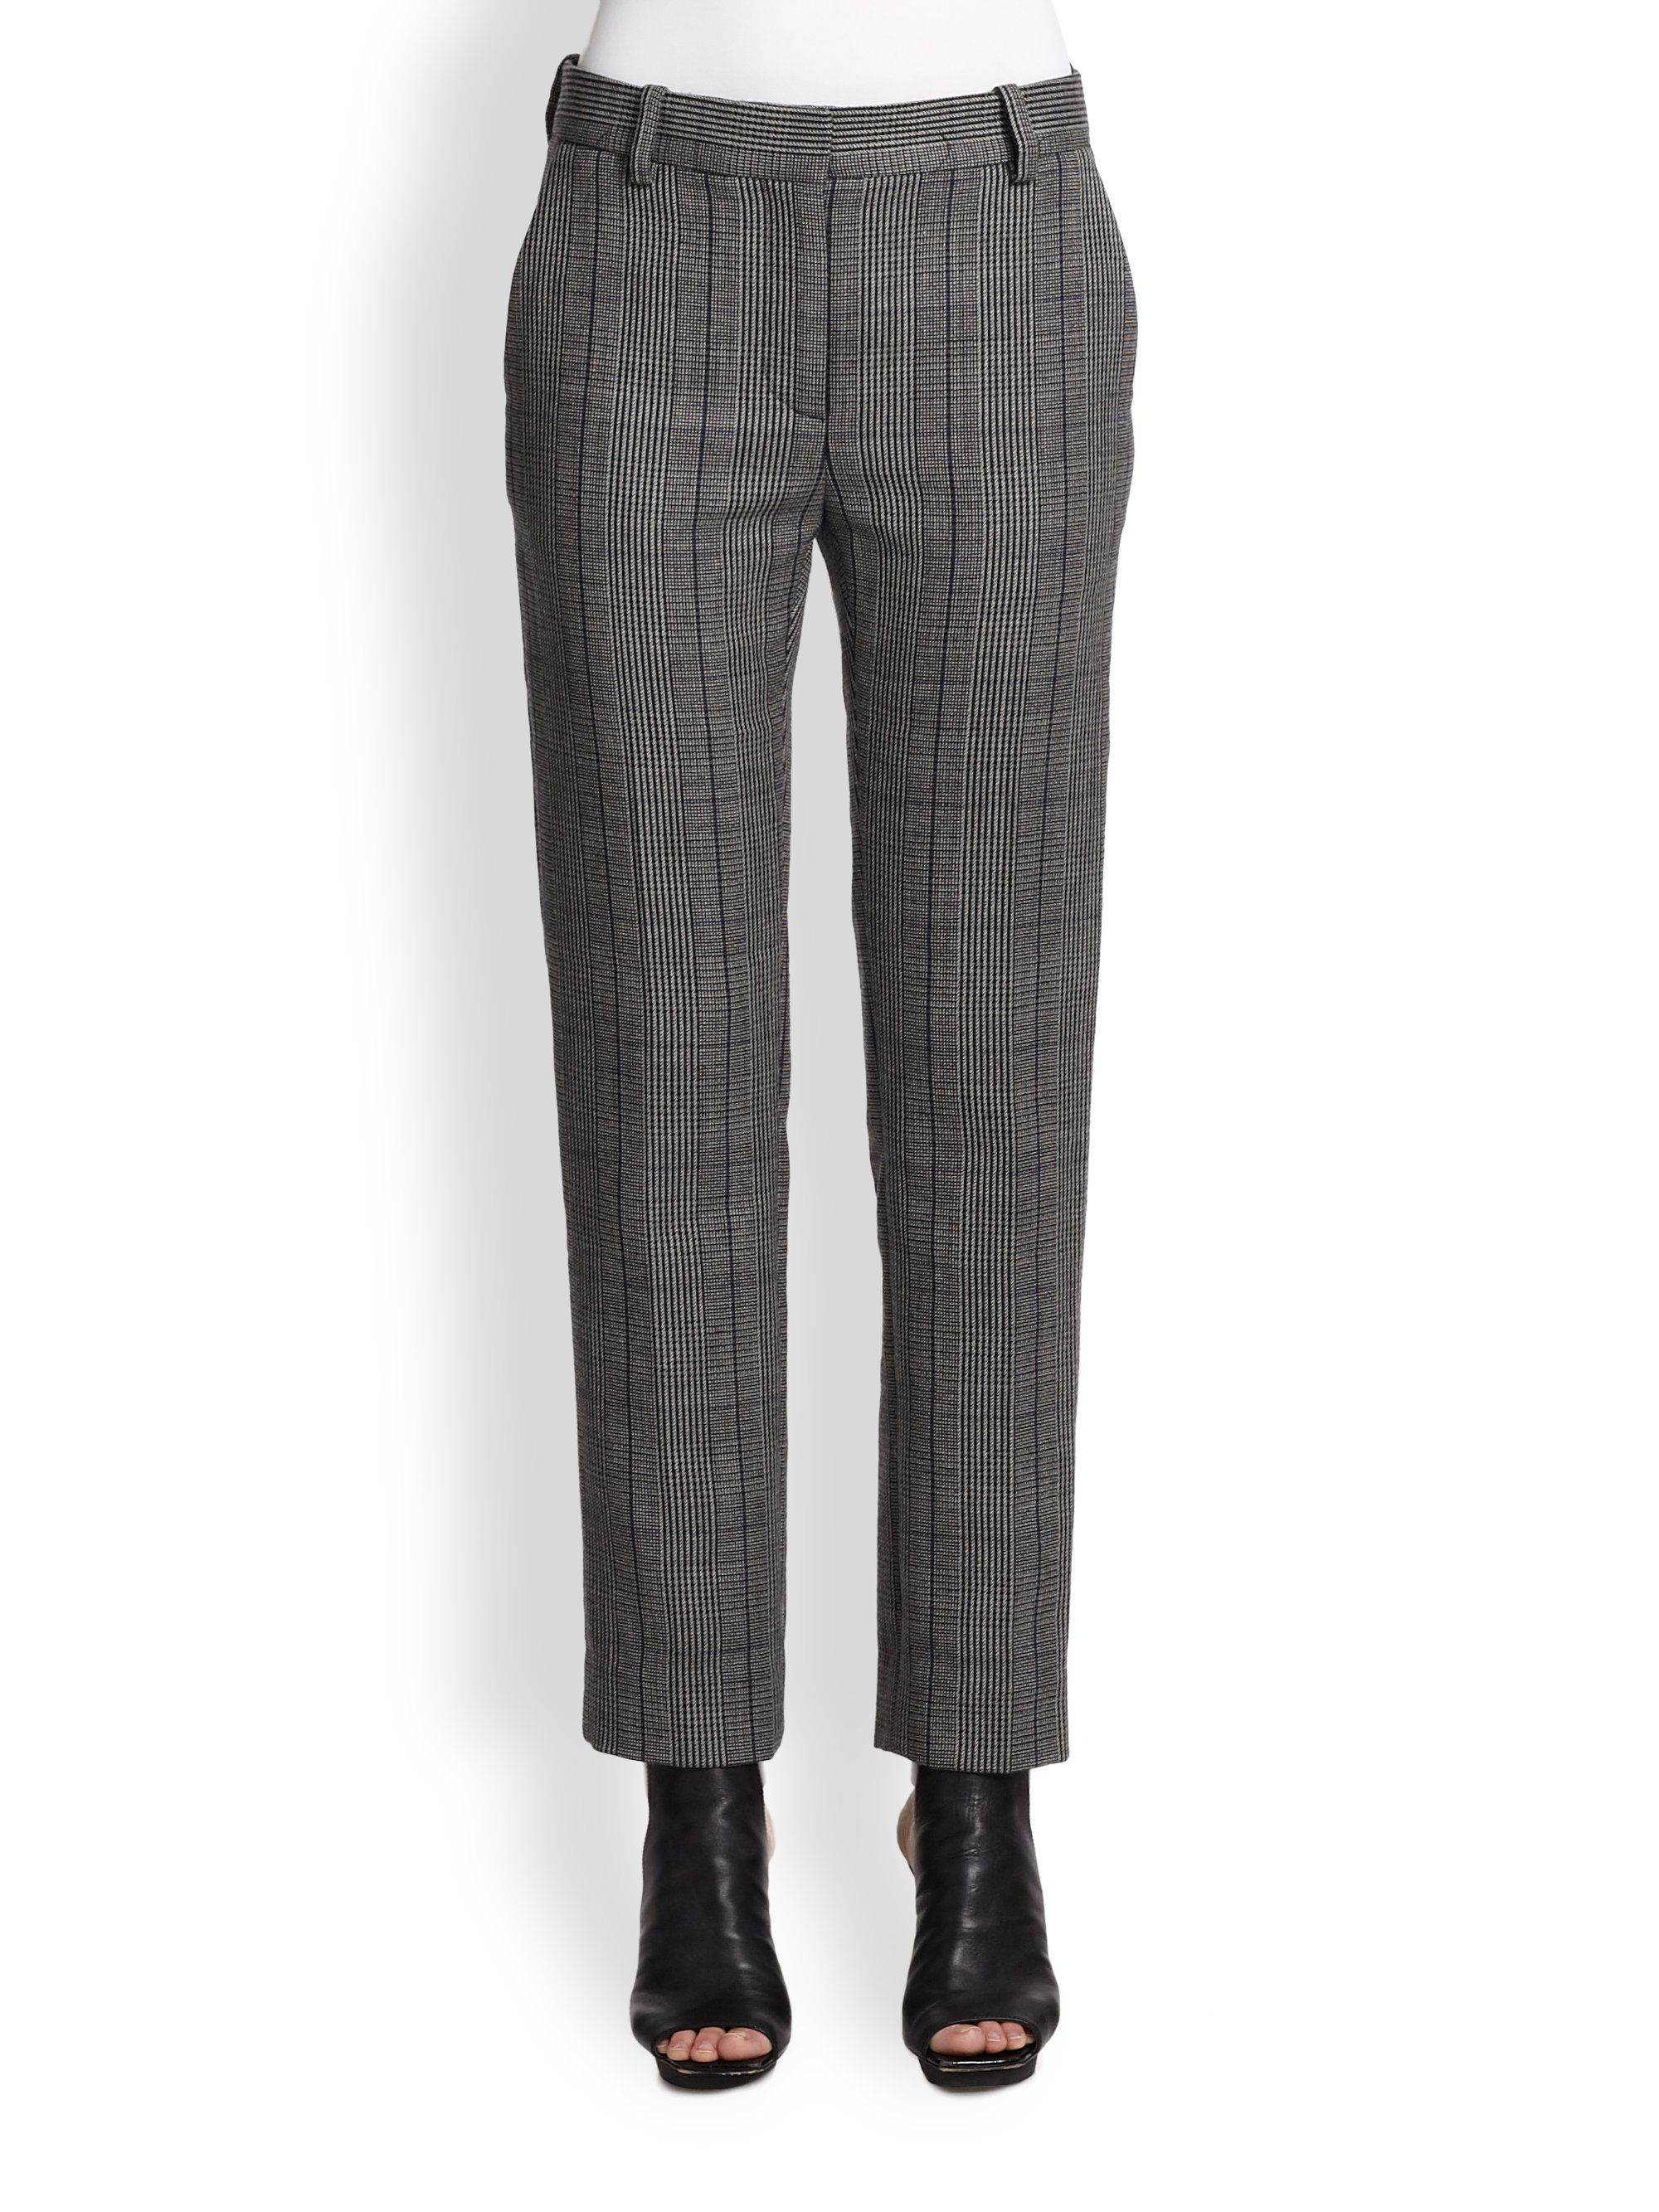 3.1 phillip lim Cropped Wool Plaid Pants in Gray | Lyst